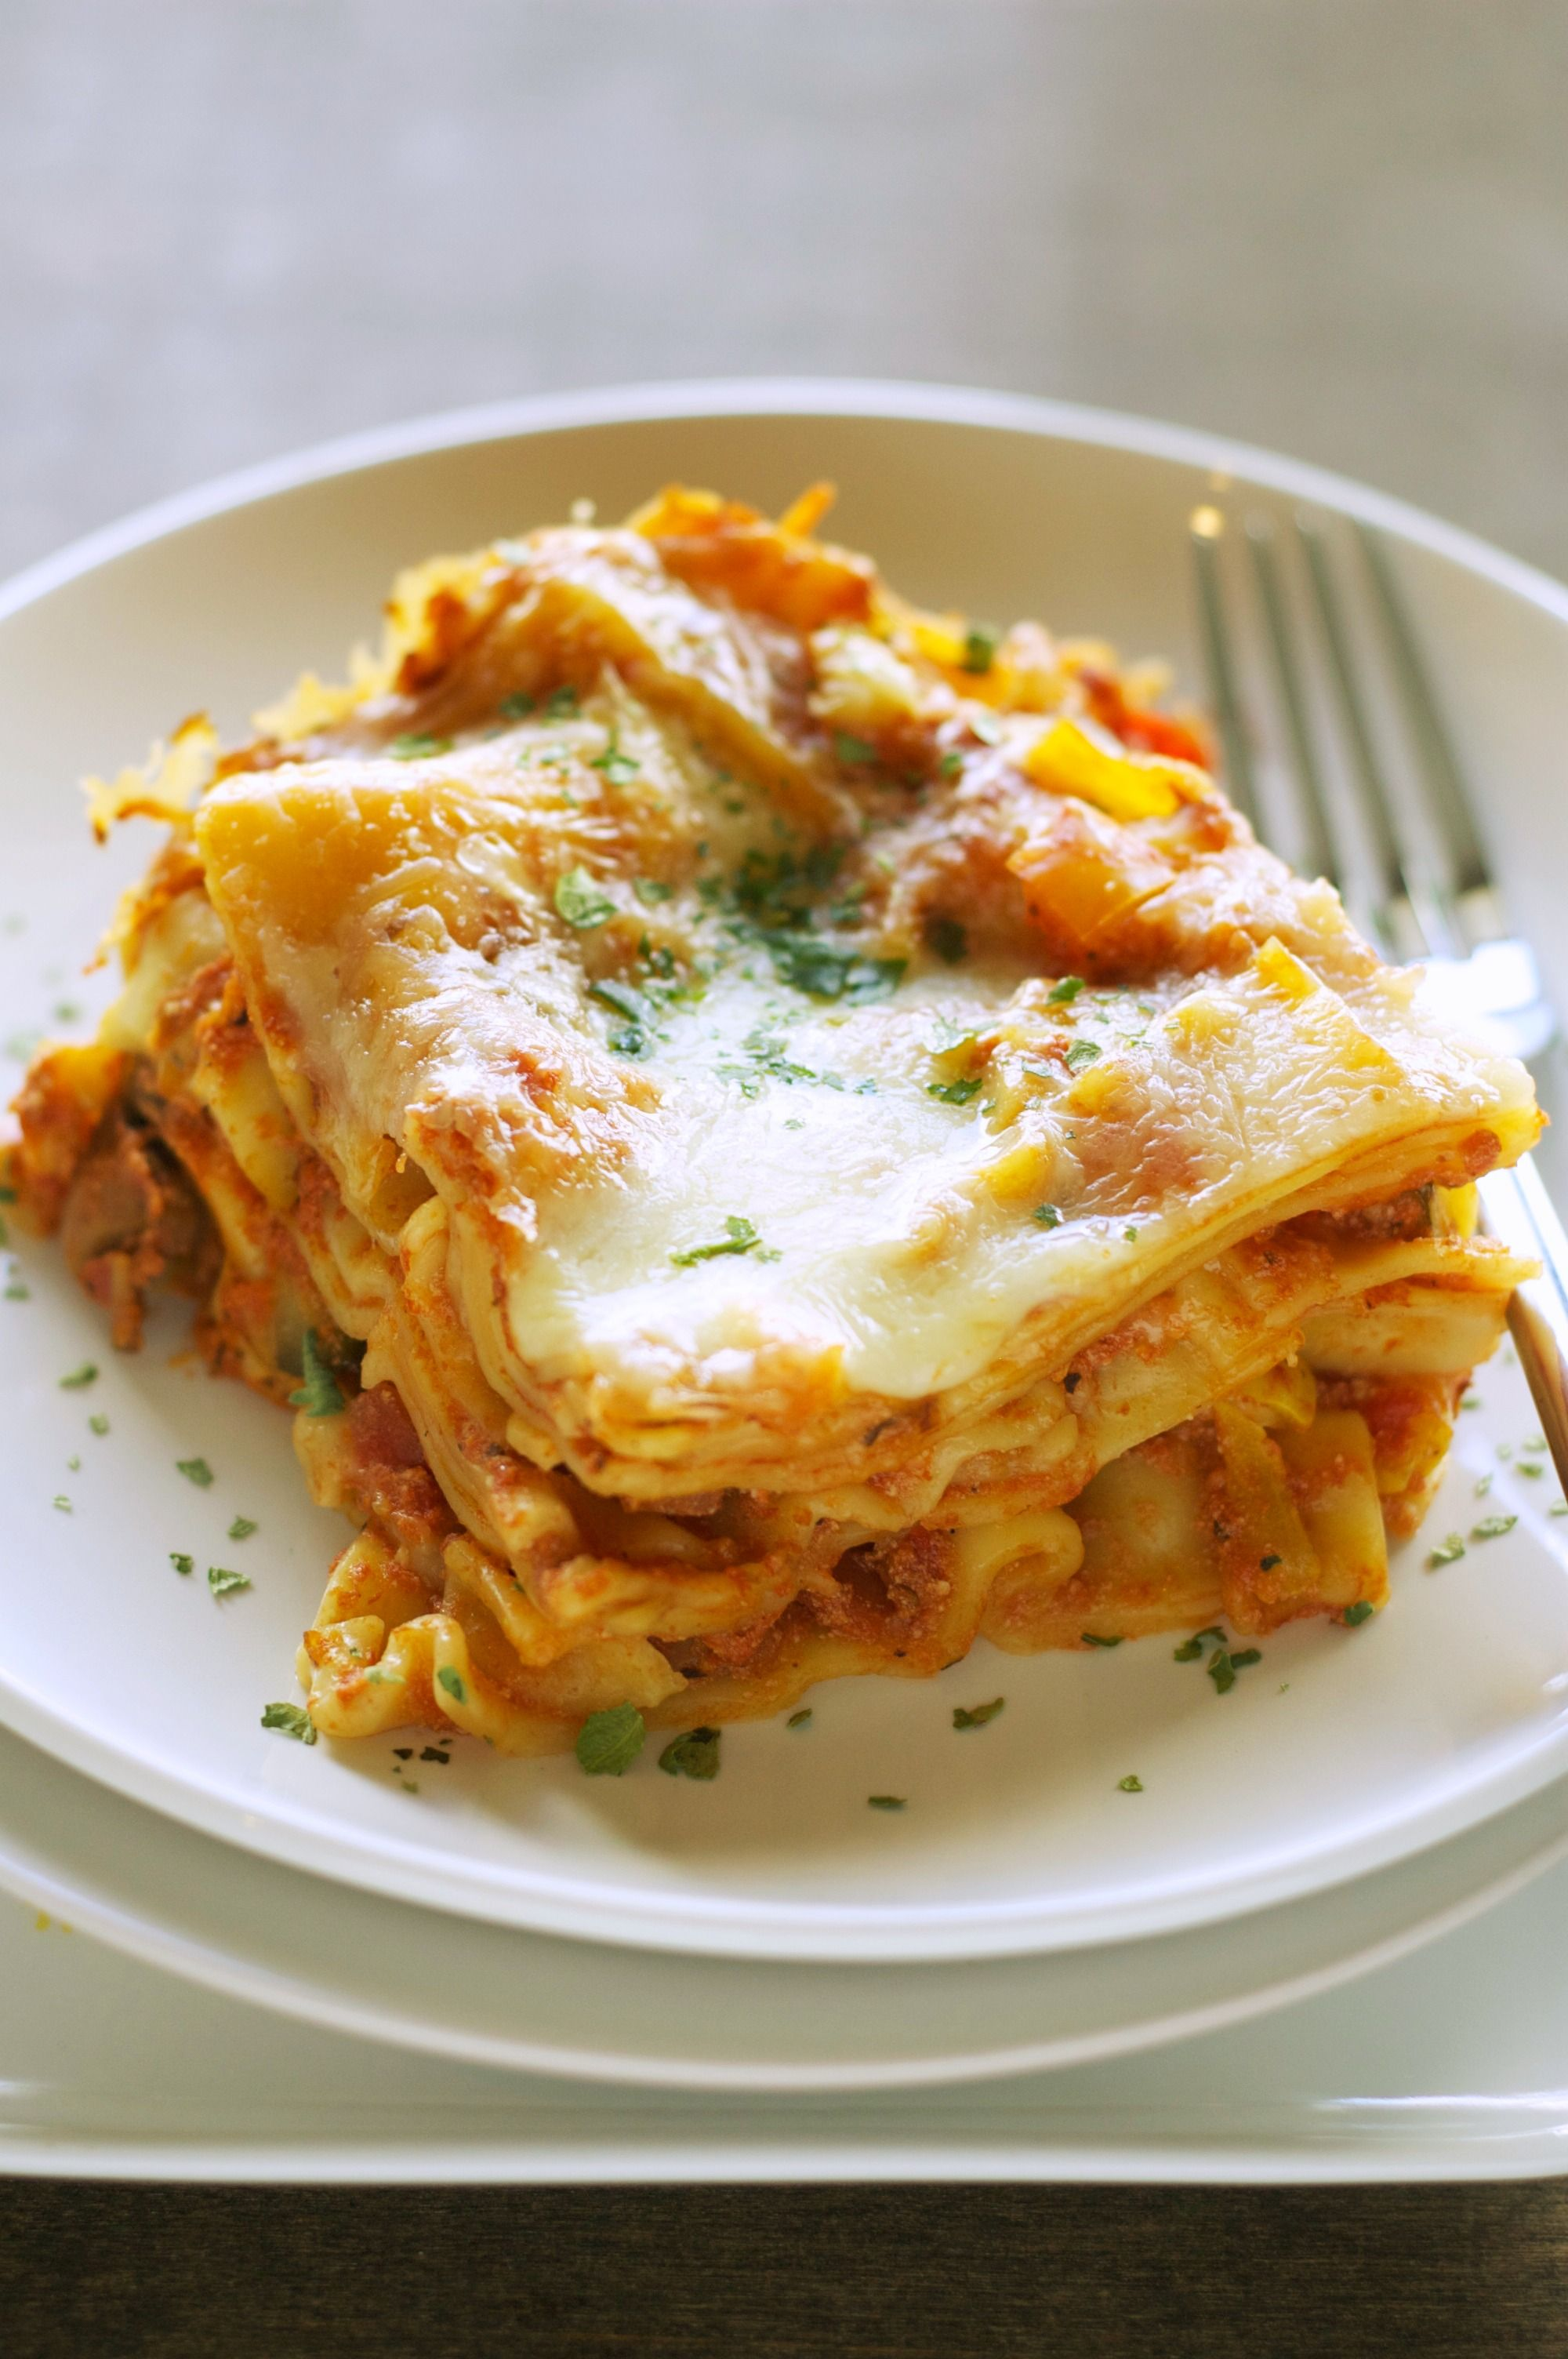 Freezer Meal:  Crockpot Veggie Lasagna. 5-6 hours low or 3 on high. Pre-freeze homemade veg/sauce mix and then just have to assemble day of!